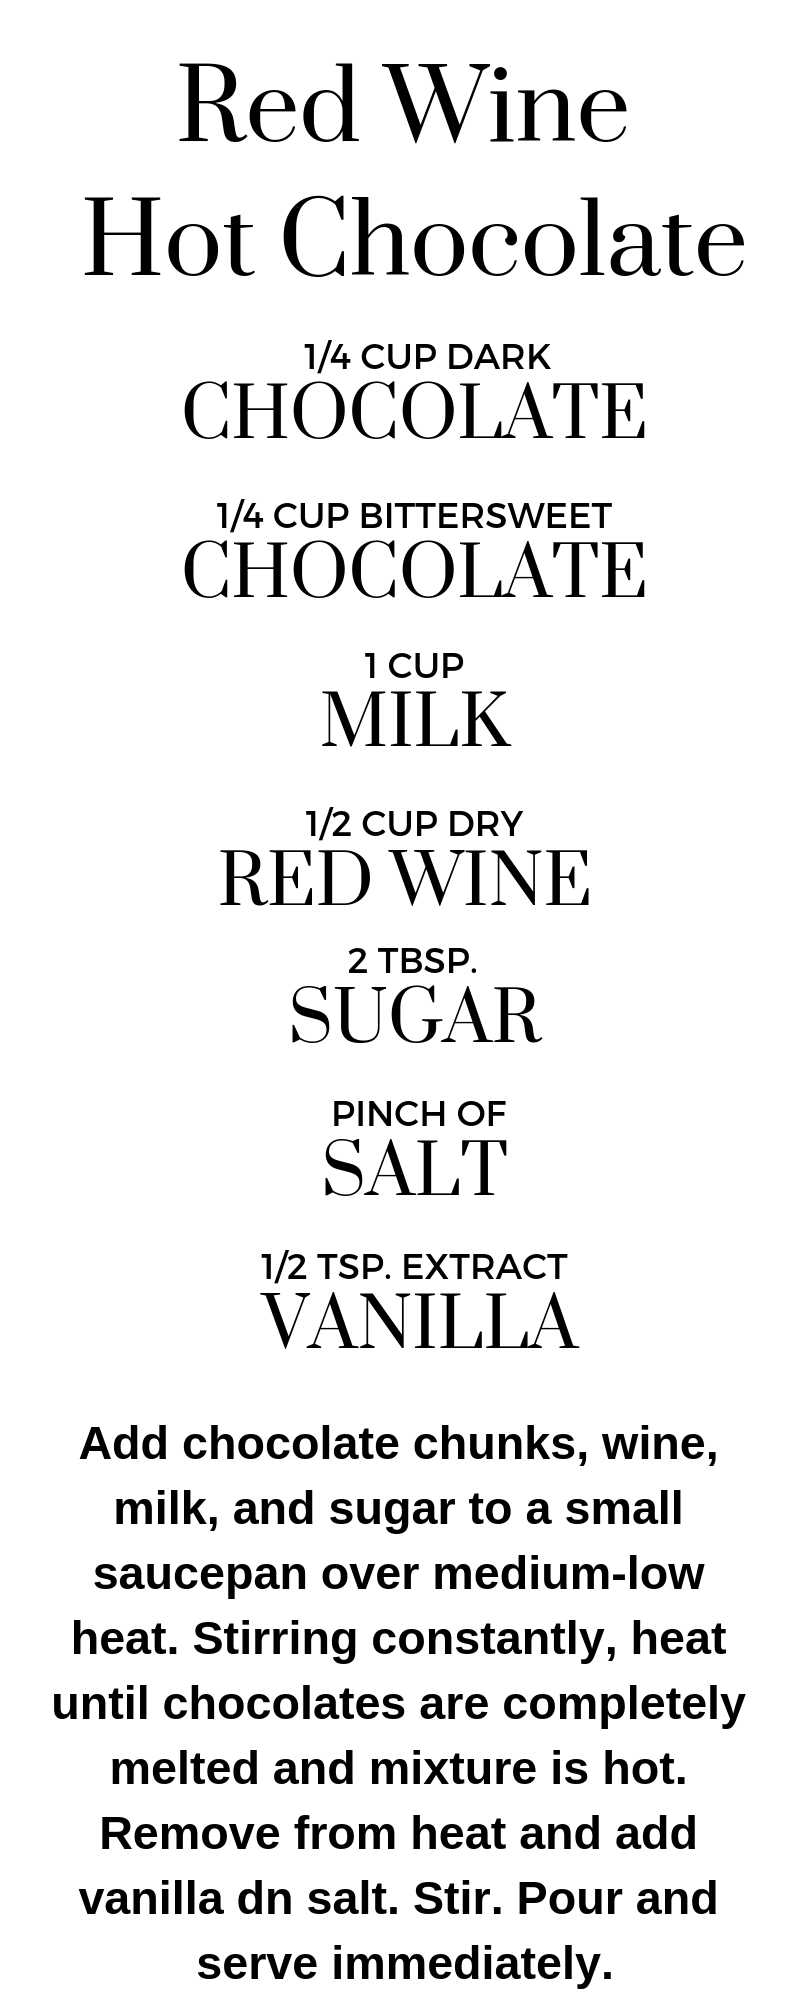 Red Wine Hot Chocolate.png